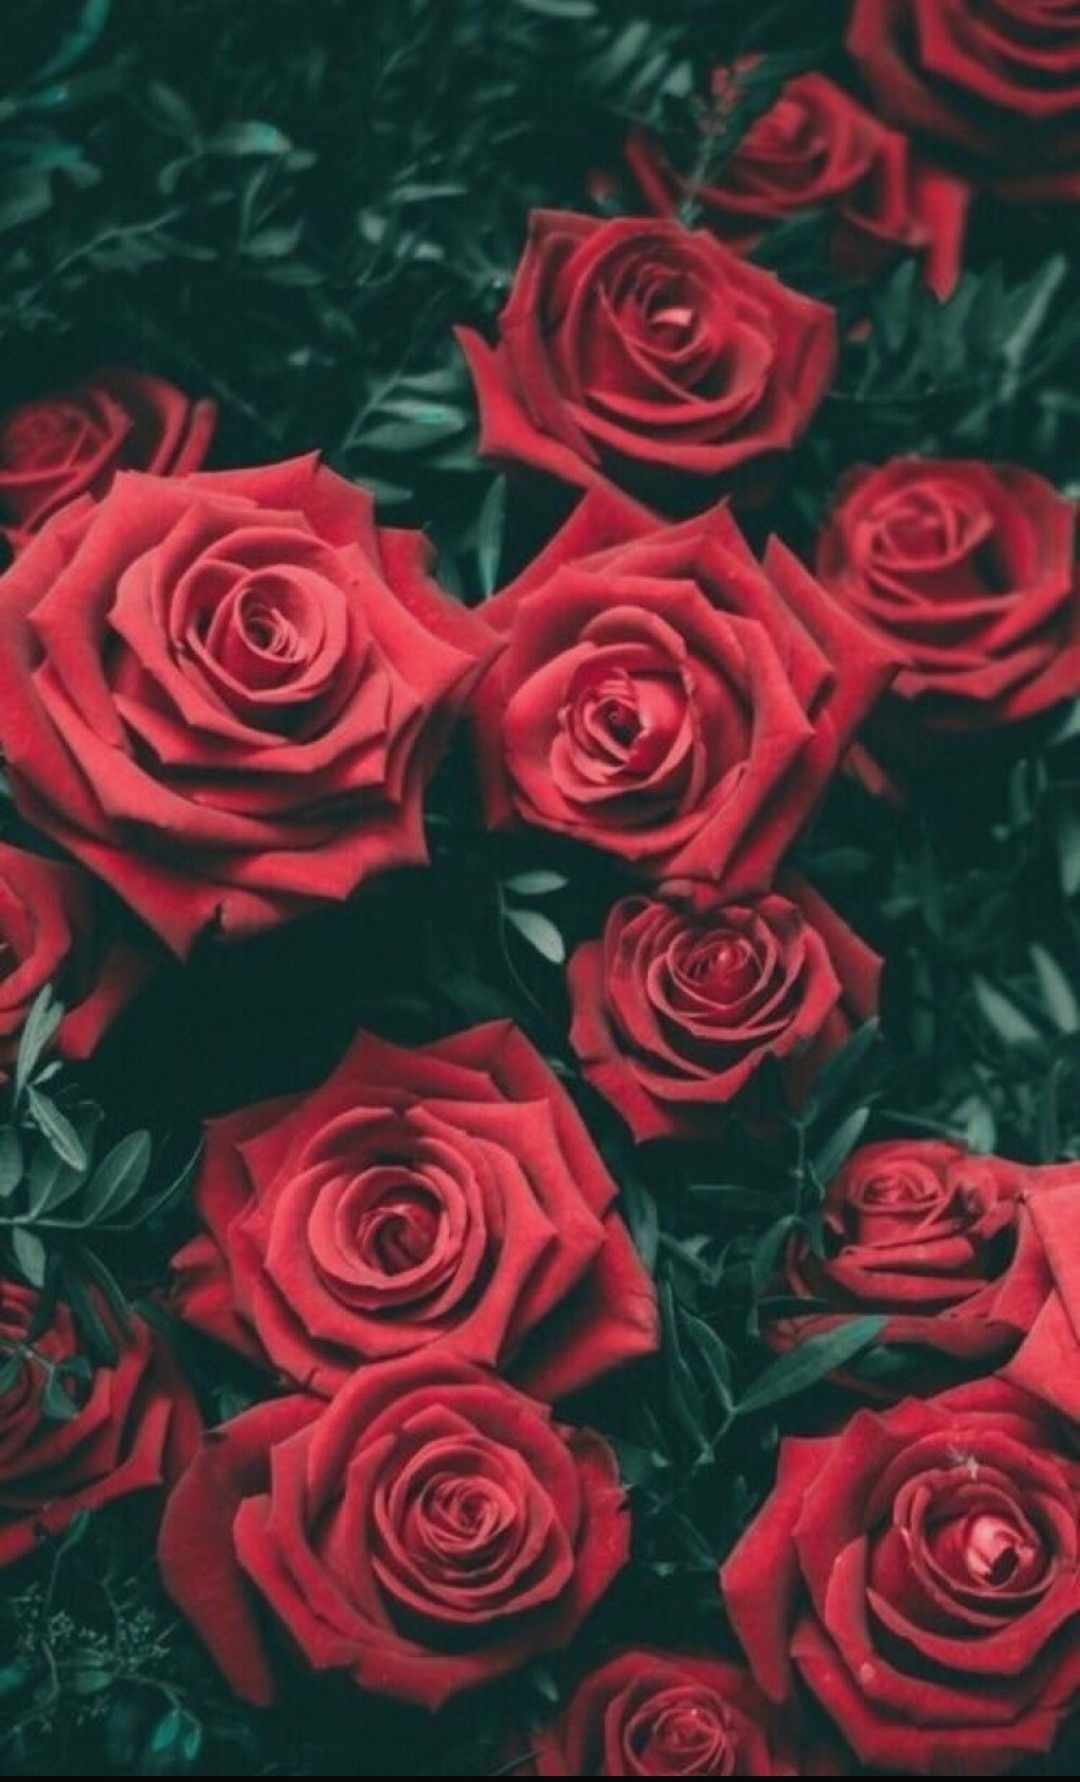 Tumblr Wallpaper Screen Wallpaper Iphone Red Wallpaper Iphone Roses Background 158960 Hd Wallpaper Backgrounds Download